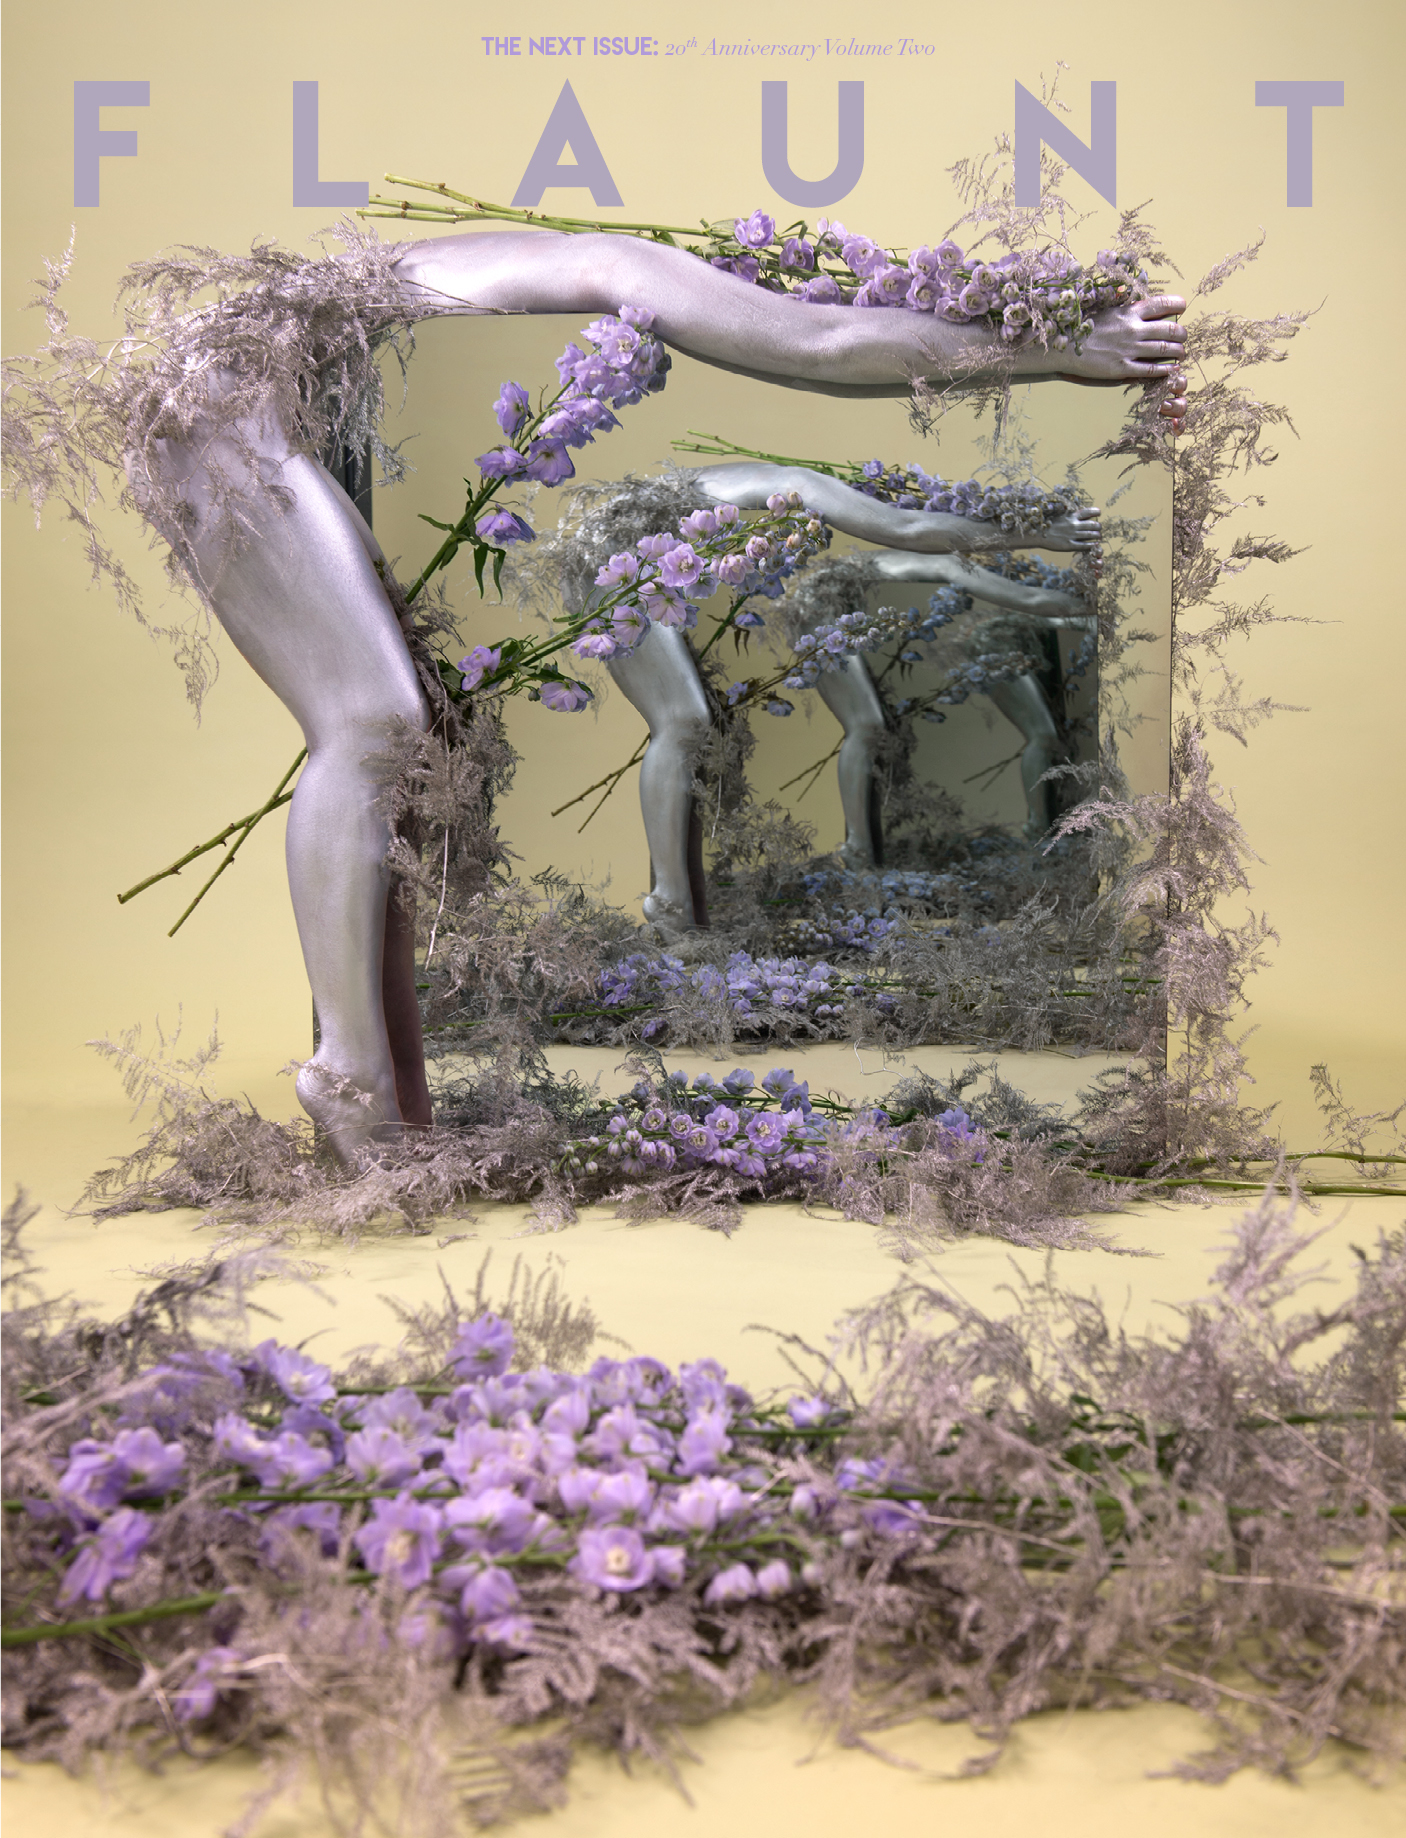 """SARAH MEYOHAS. """"SILVER SPECULATION"""" (2018). CHROMOGENIC PRINT. 40 X 60 INCHES. COURTESY OF THE ARTIST."""